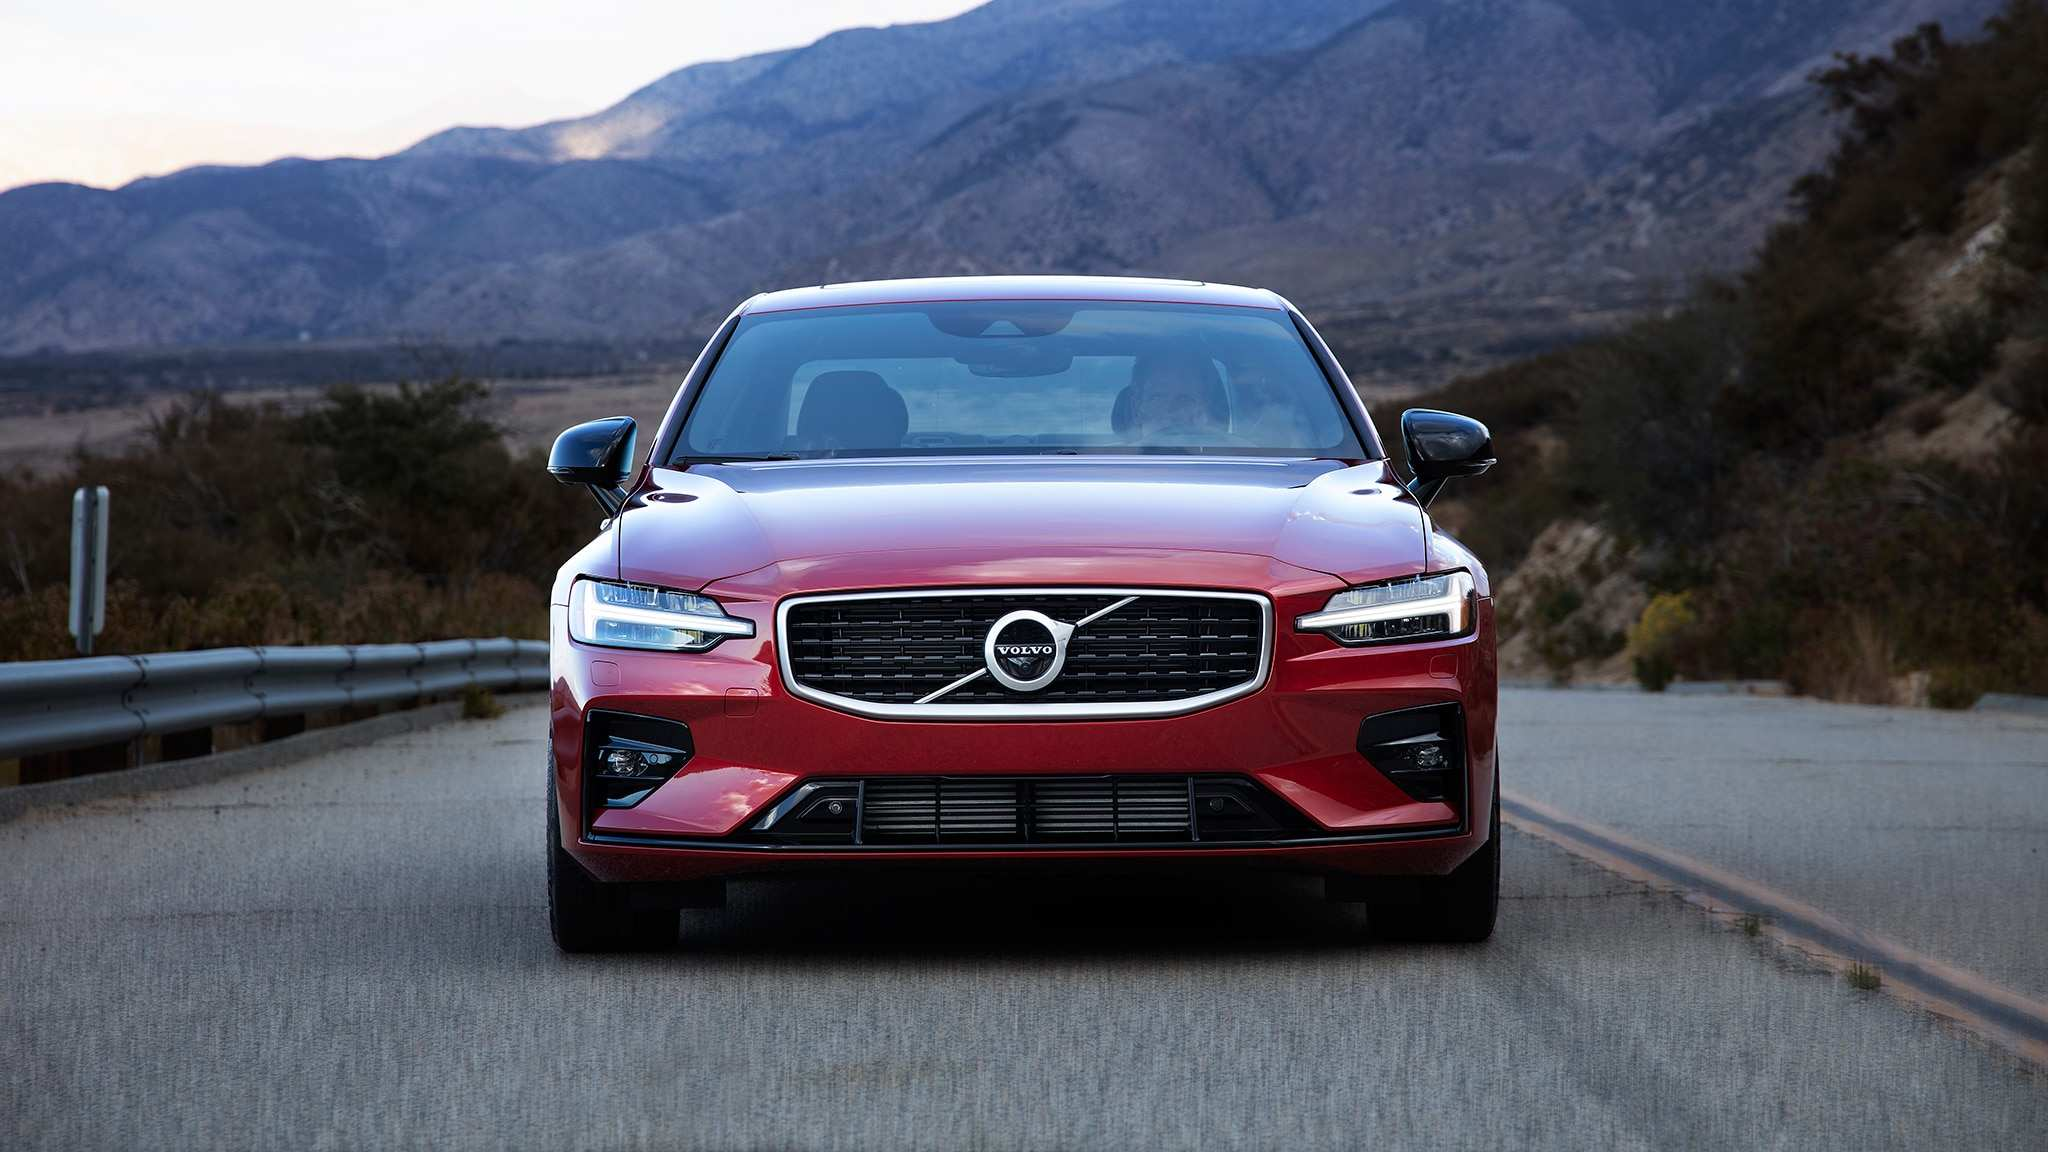 94 All New 2019 Volvo 260 Research New by 2019 Volvo 260